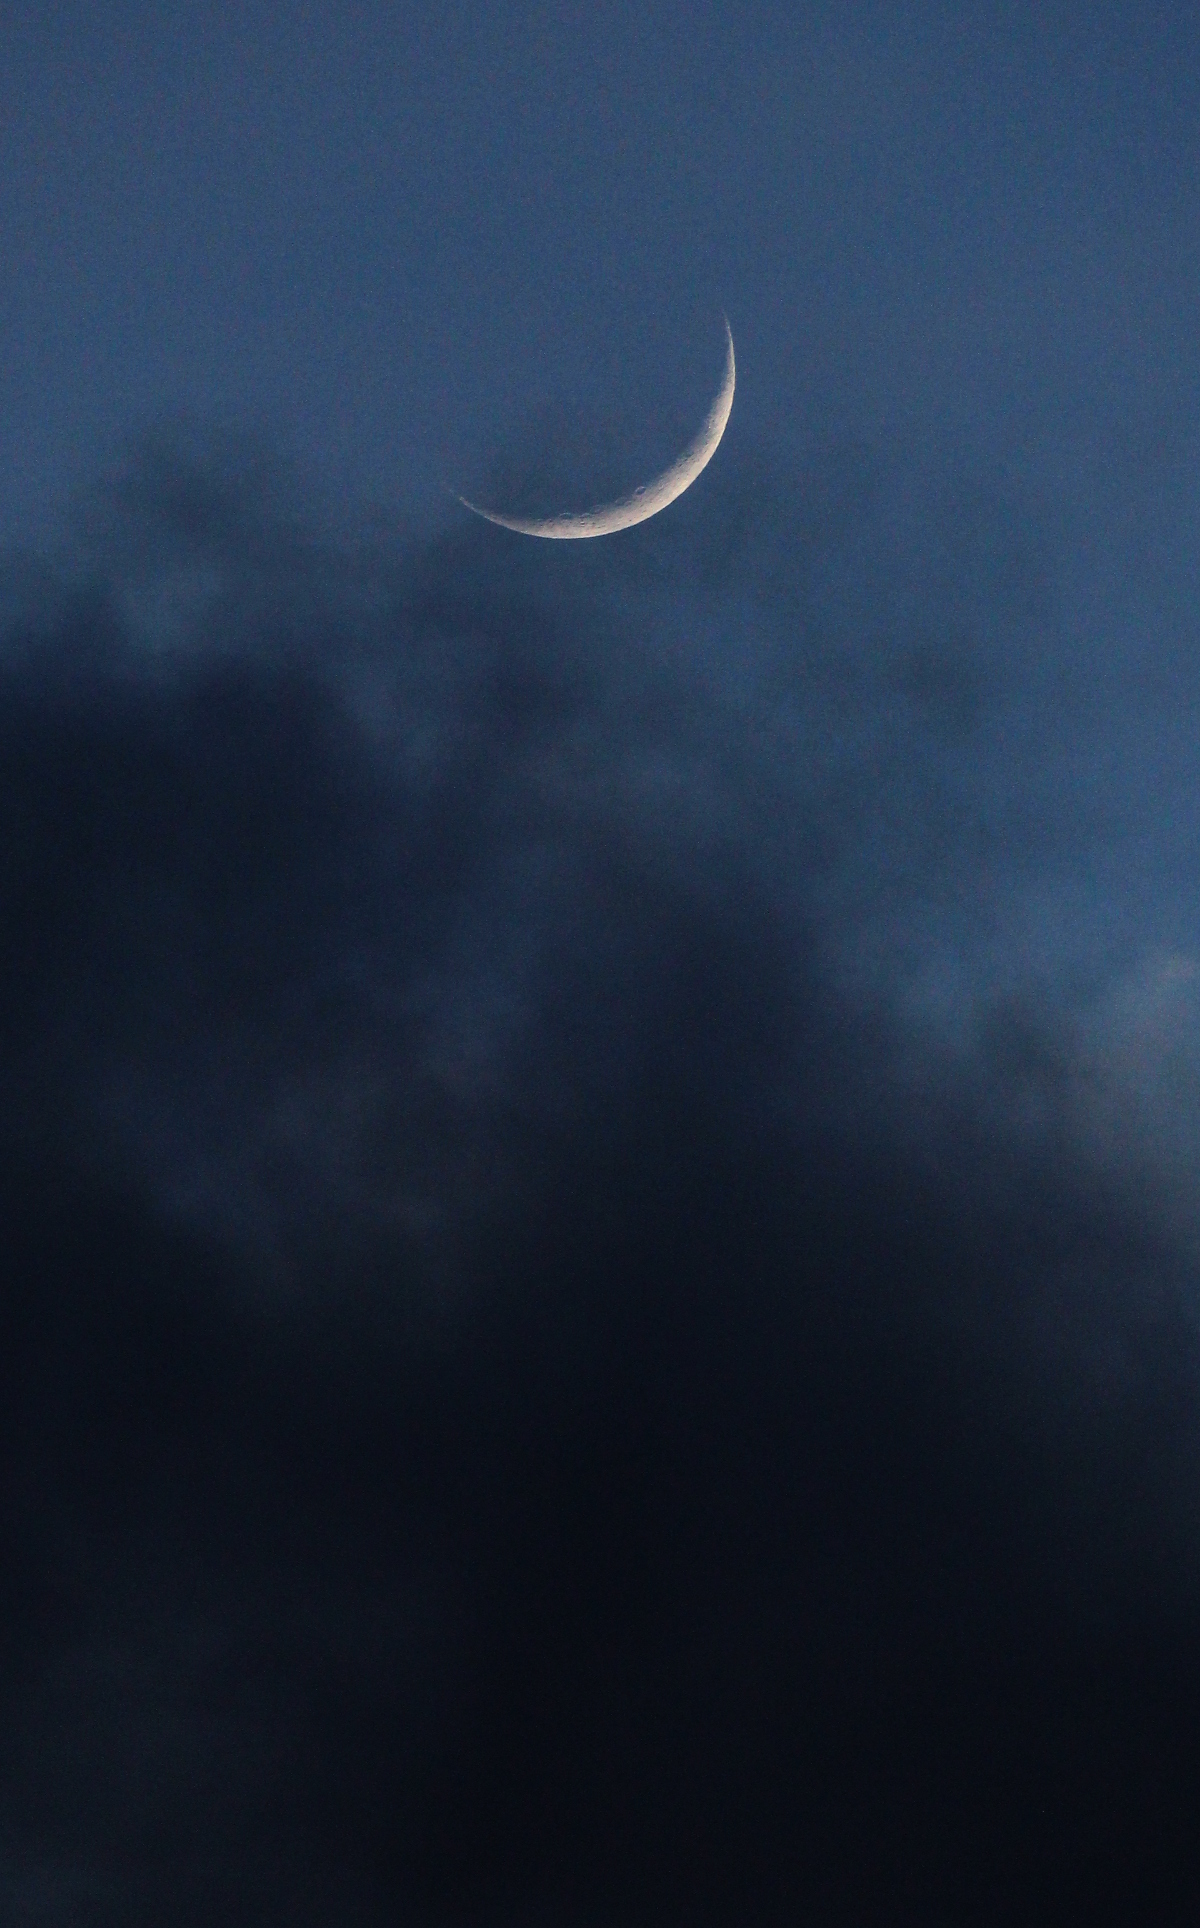 thin crescent moon in dark blue sky and clouds